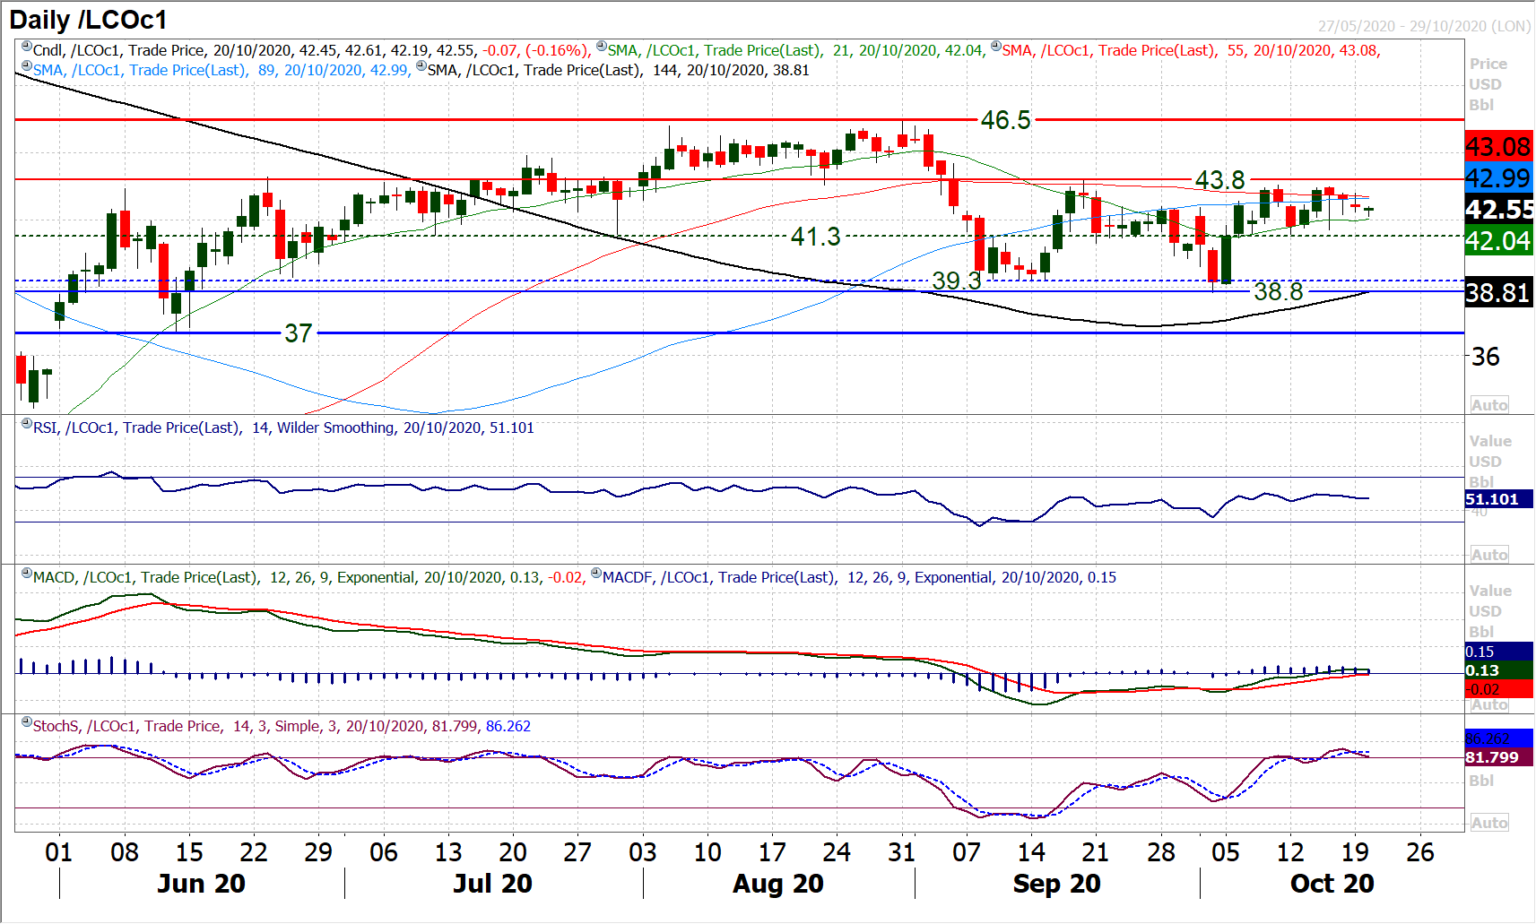 Oil - Daily Chart